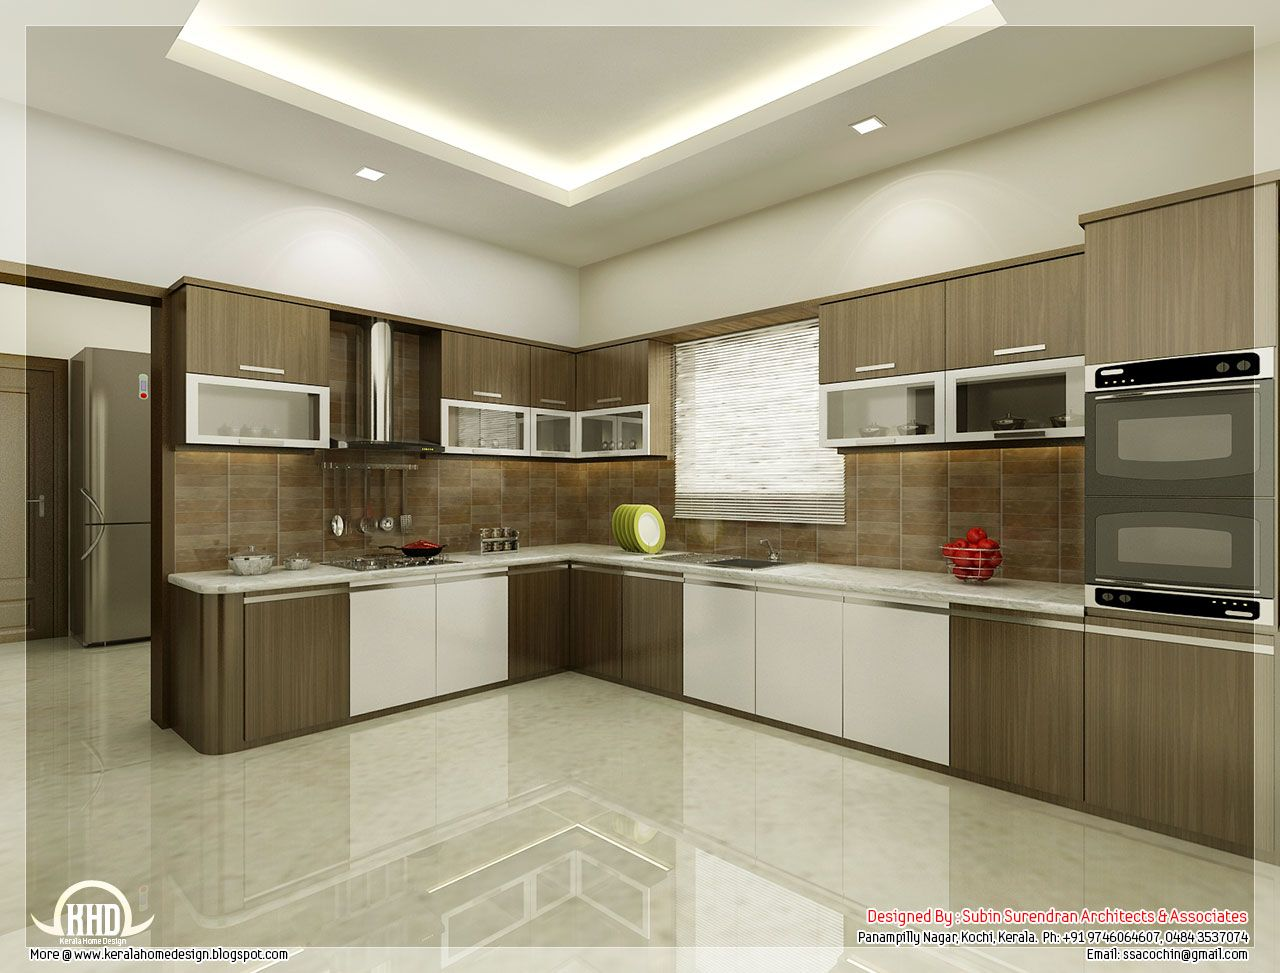 kitchen dining interiors kerala home design floor plans home luxury modern home interior design haynes house - Interior Kitchen Design